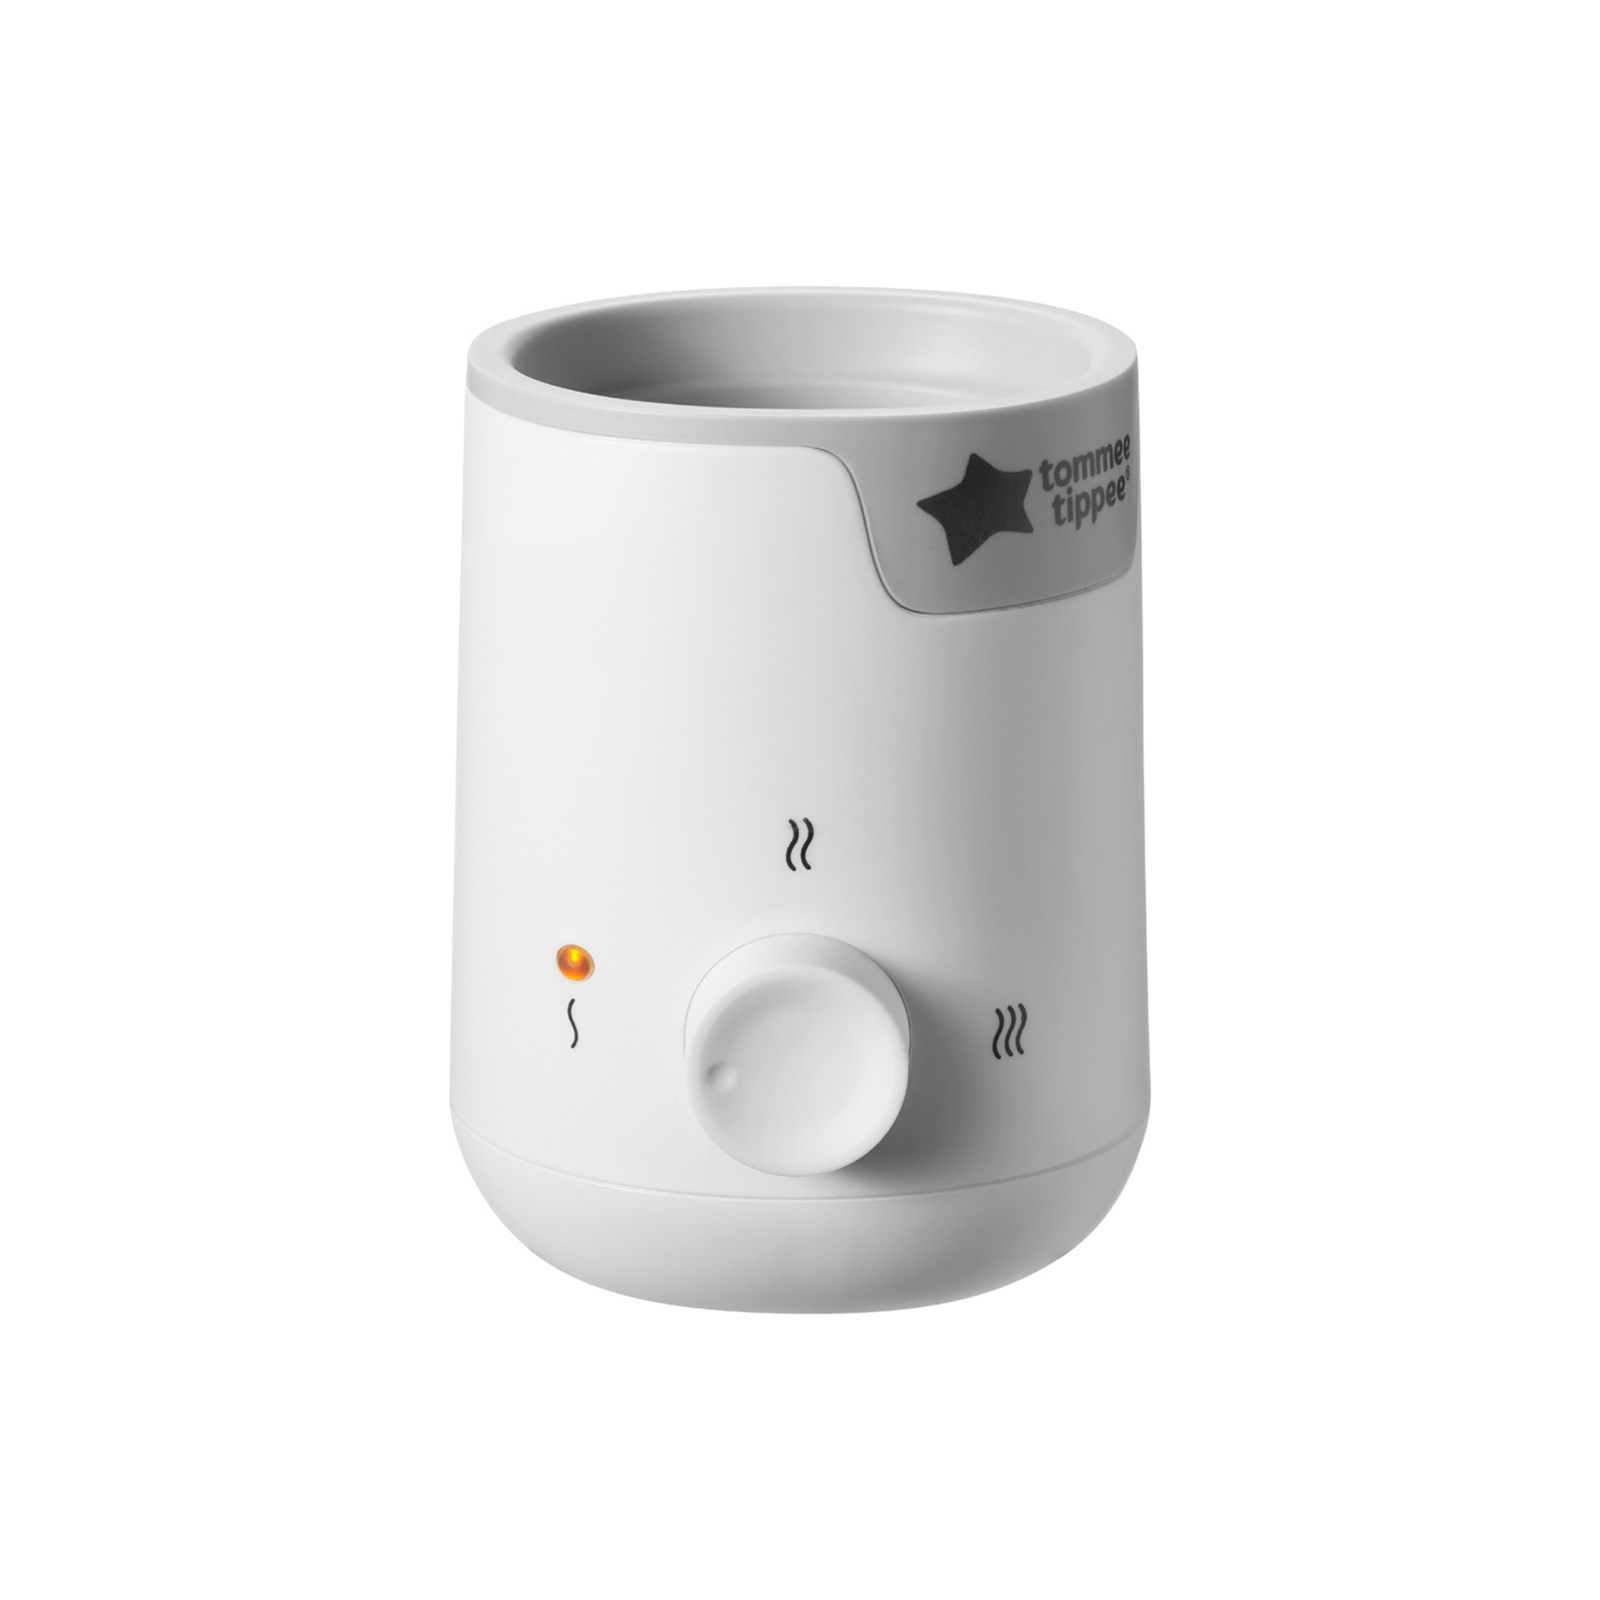 Tommee Tippee® Easi-Warm Bottle and Food Warmer